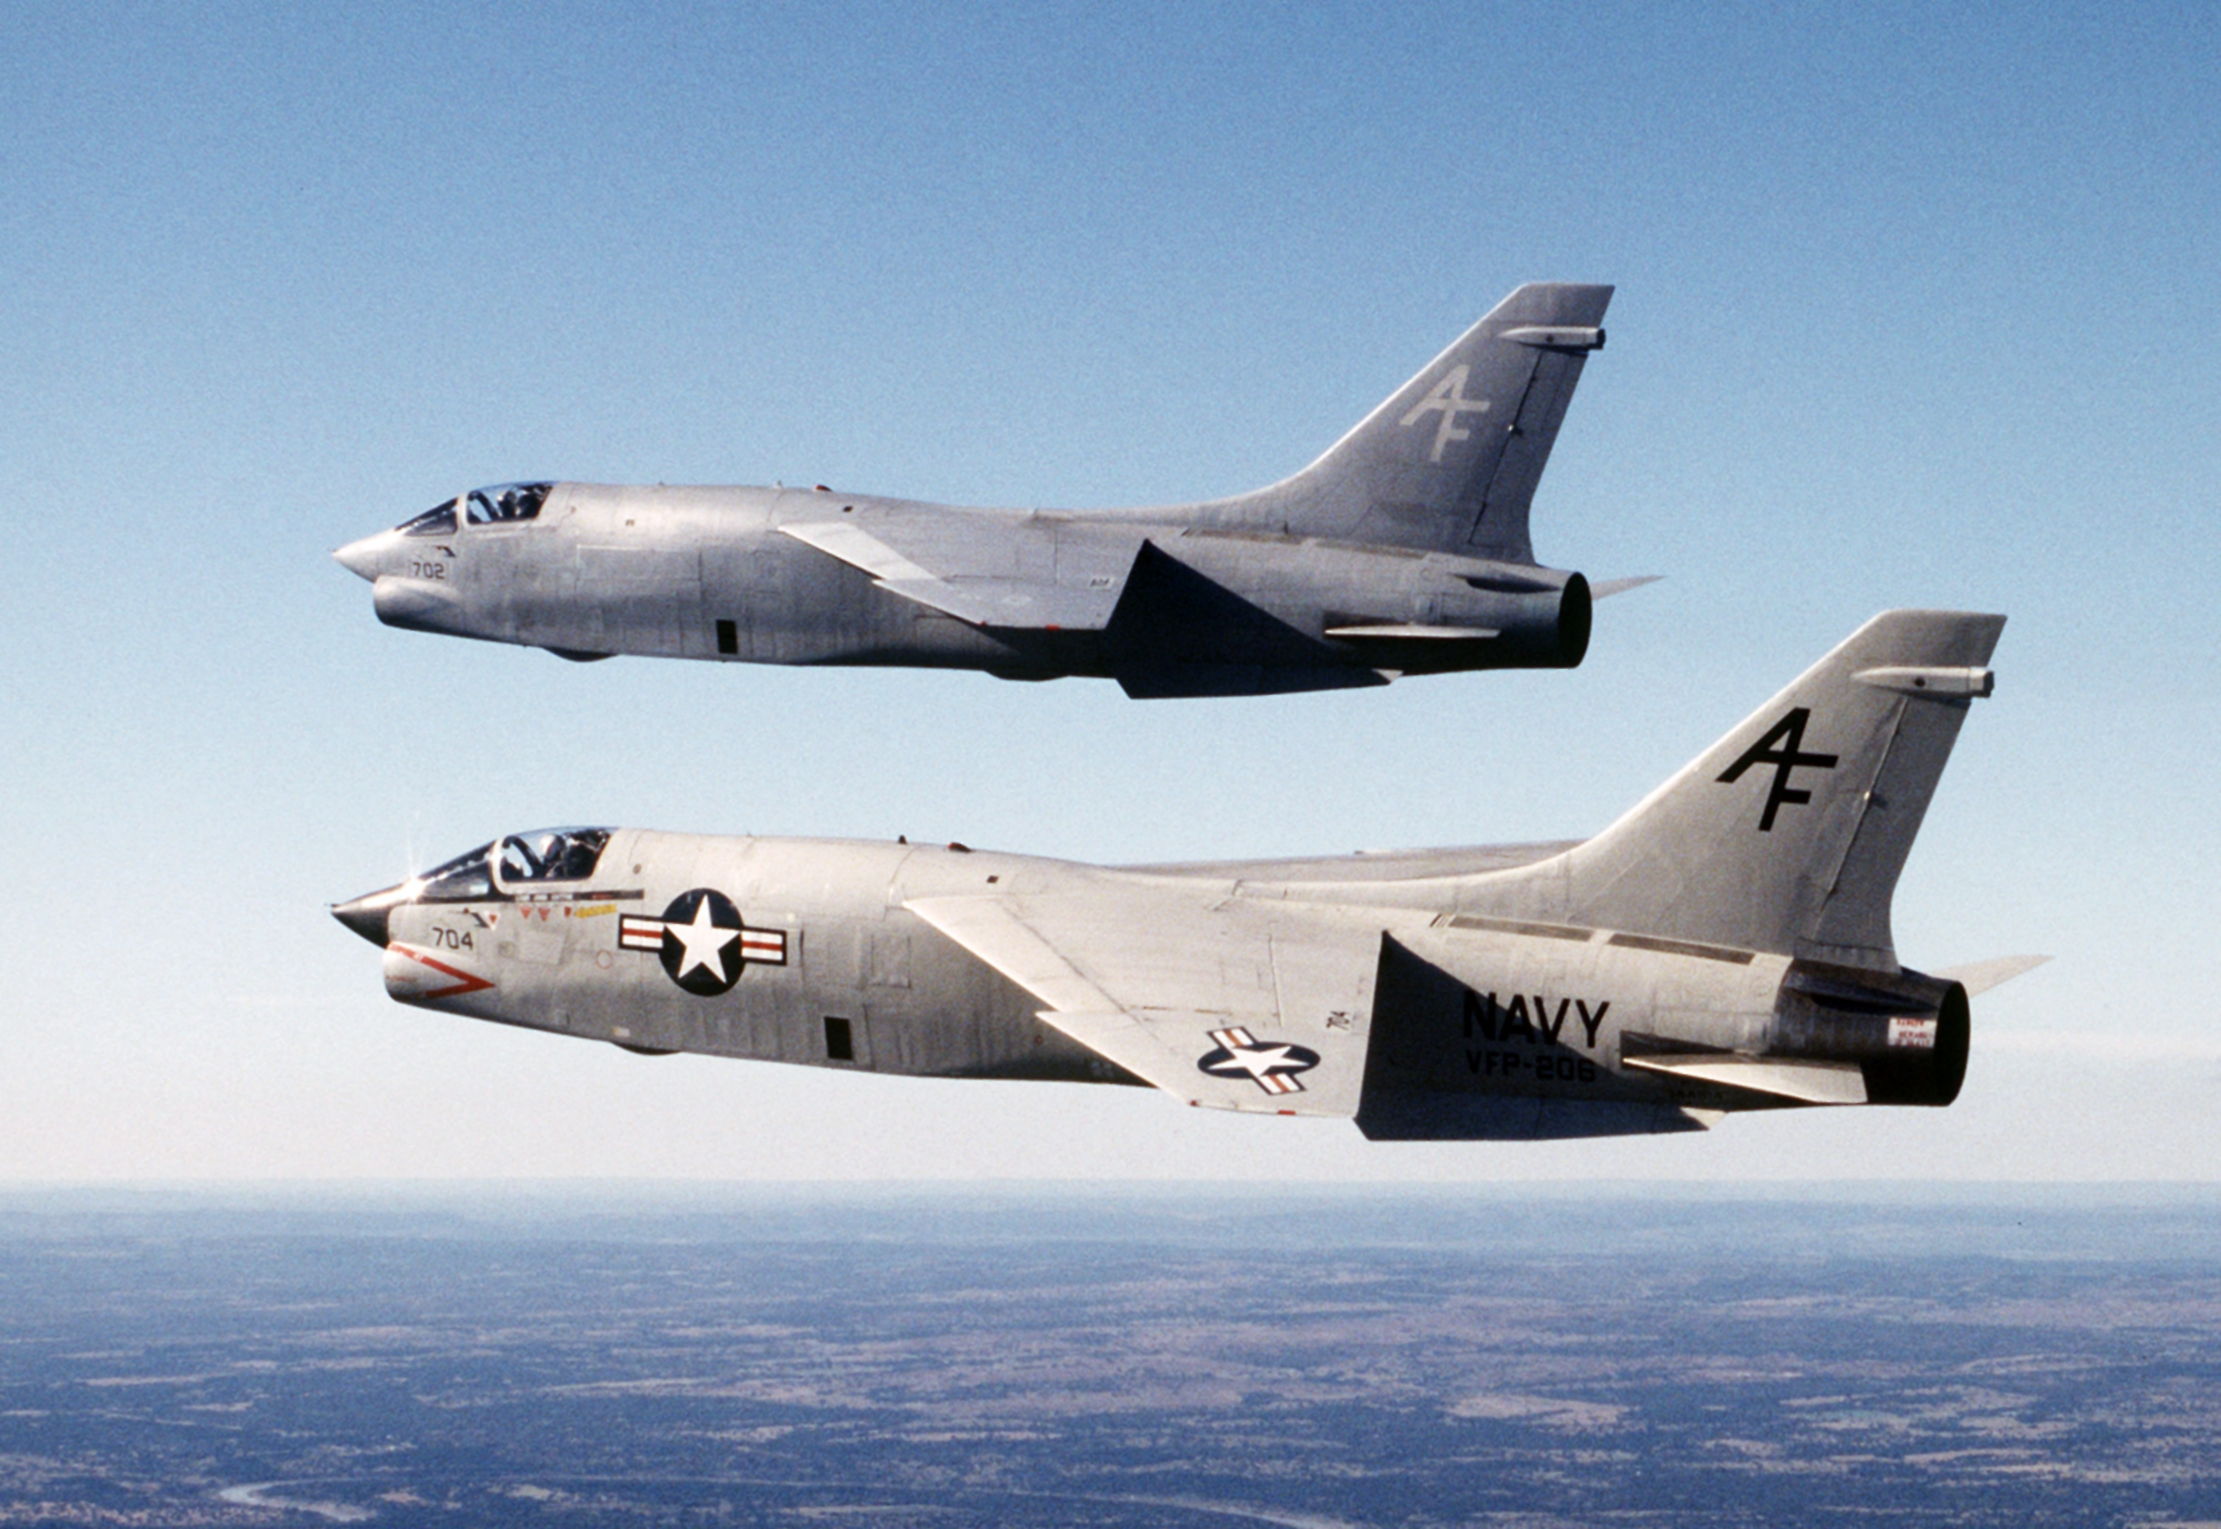 http://en.academic.ru/pictures/enwiki/82/RF-8Gs_VFP-206_in_flight_1986.JPEG